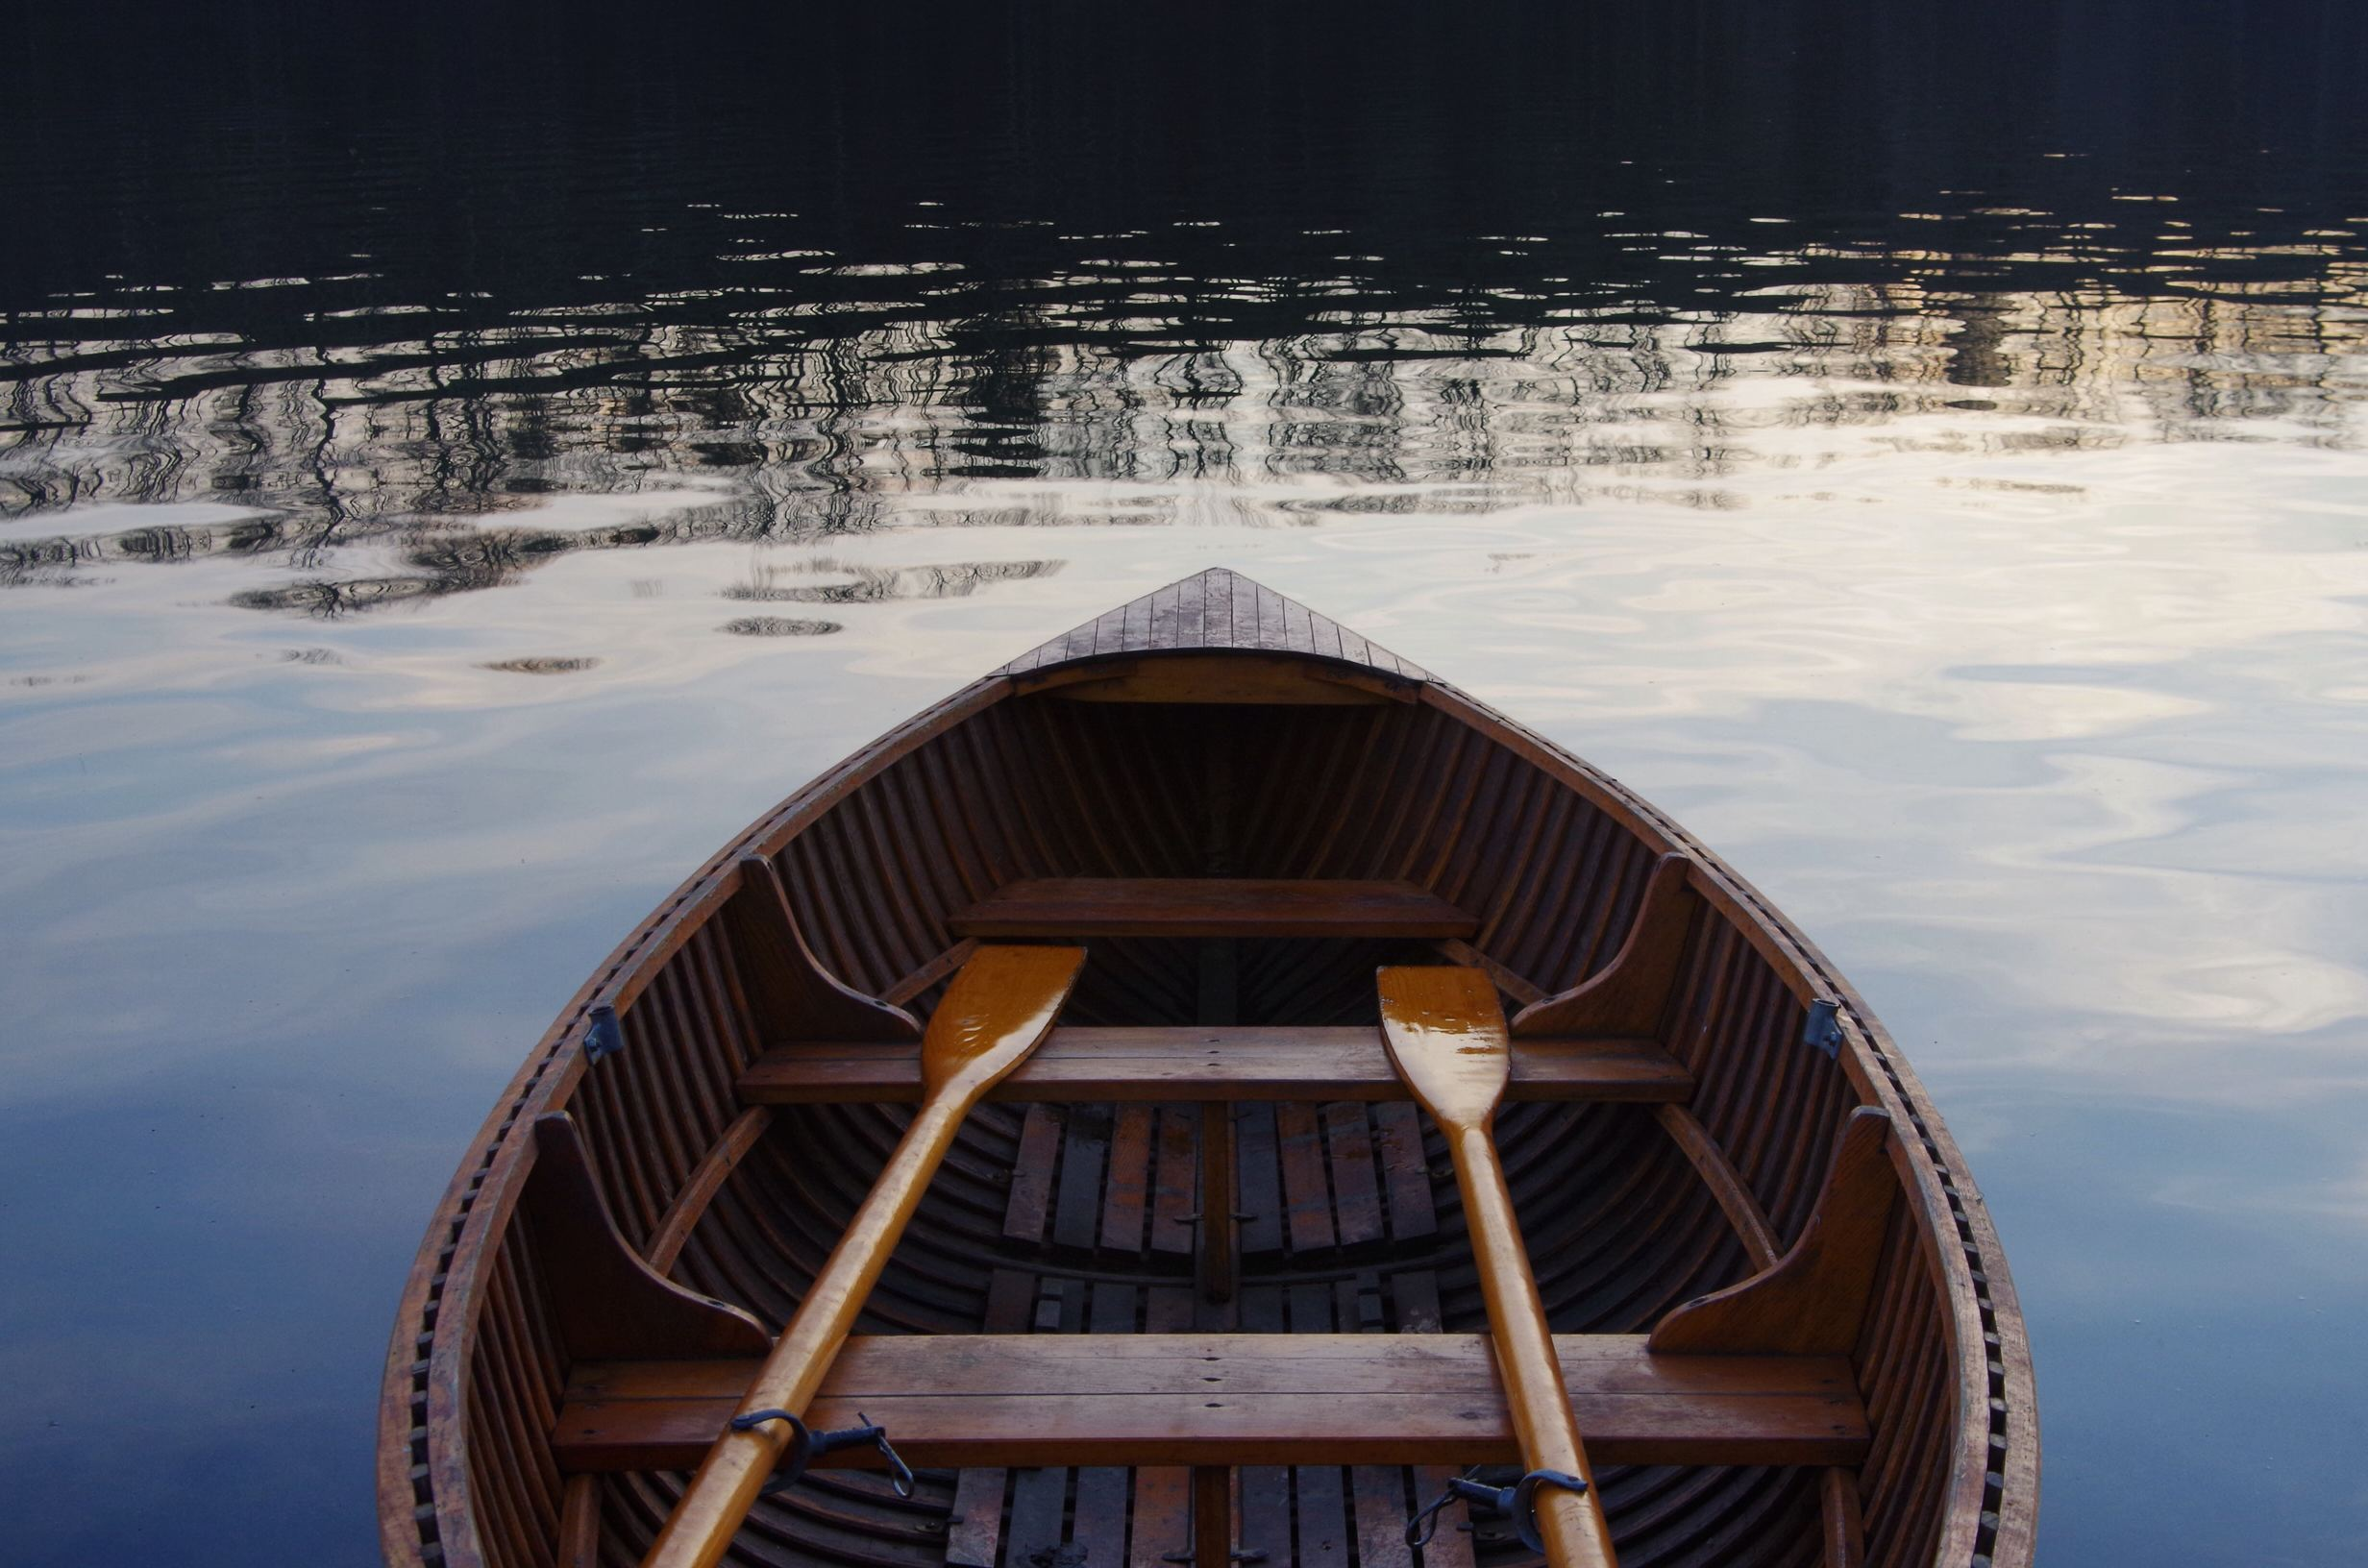 find serenity in selling your boat